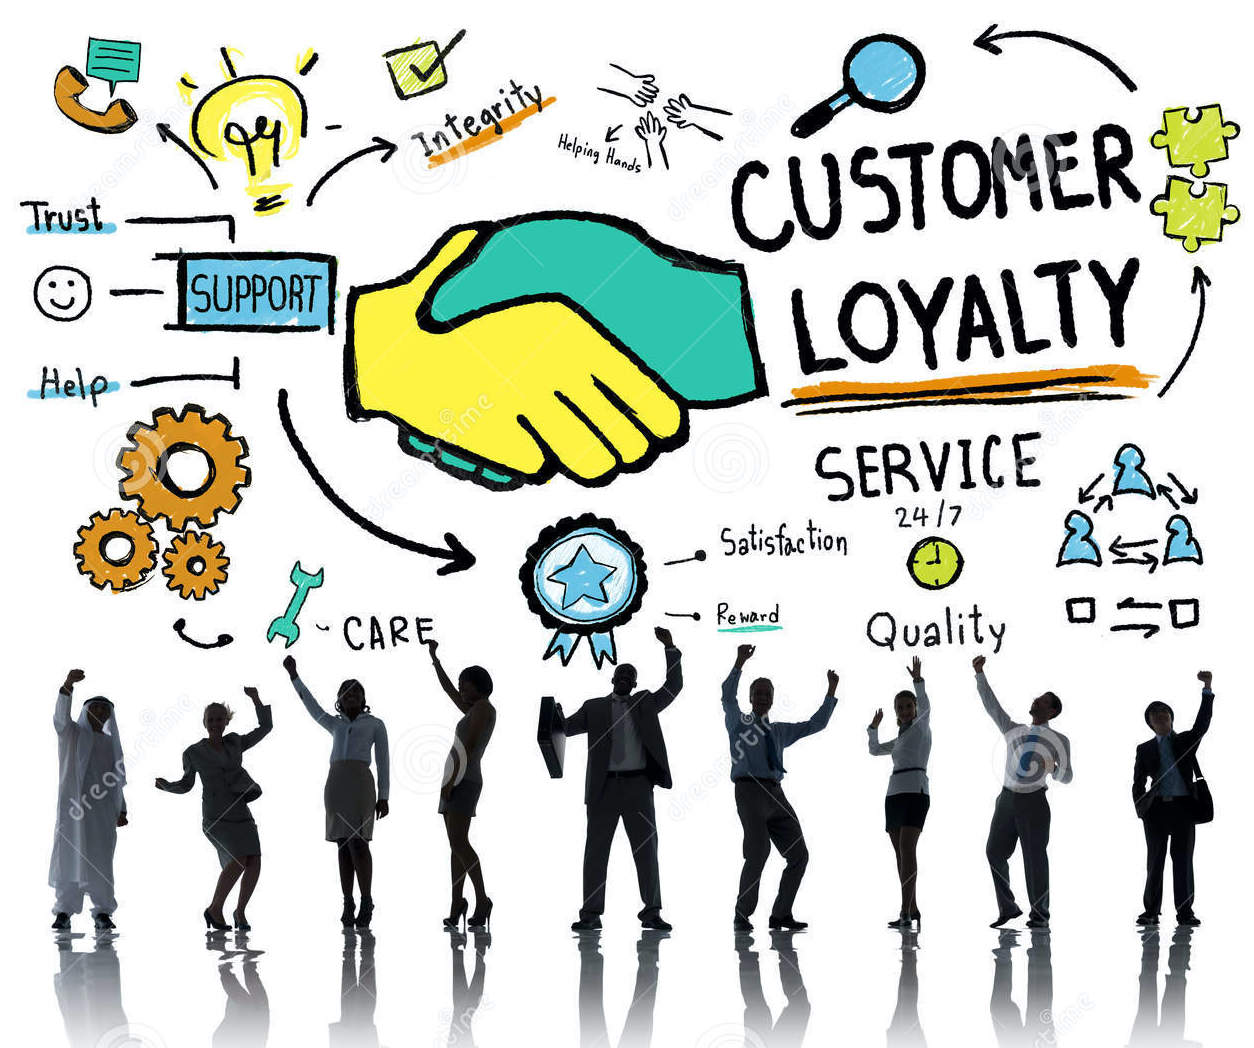 customer-loyalty-service-support-care-trust-business-concept-54337822